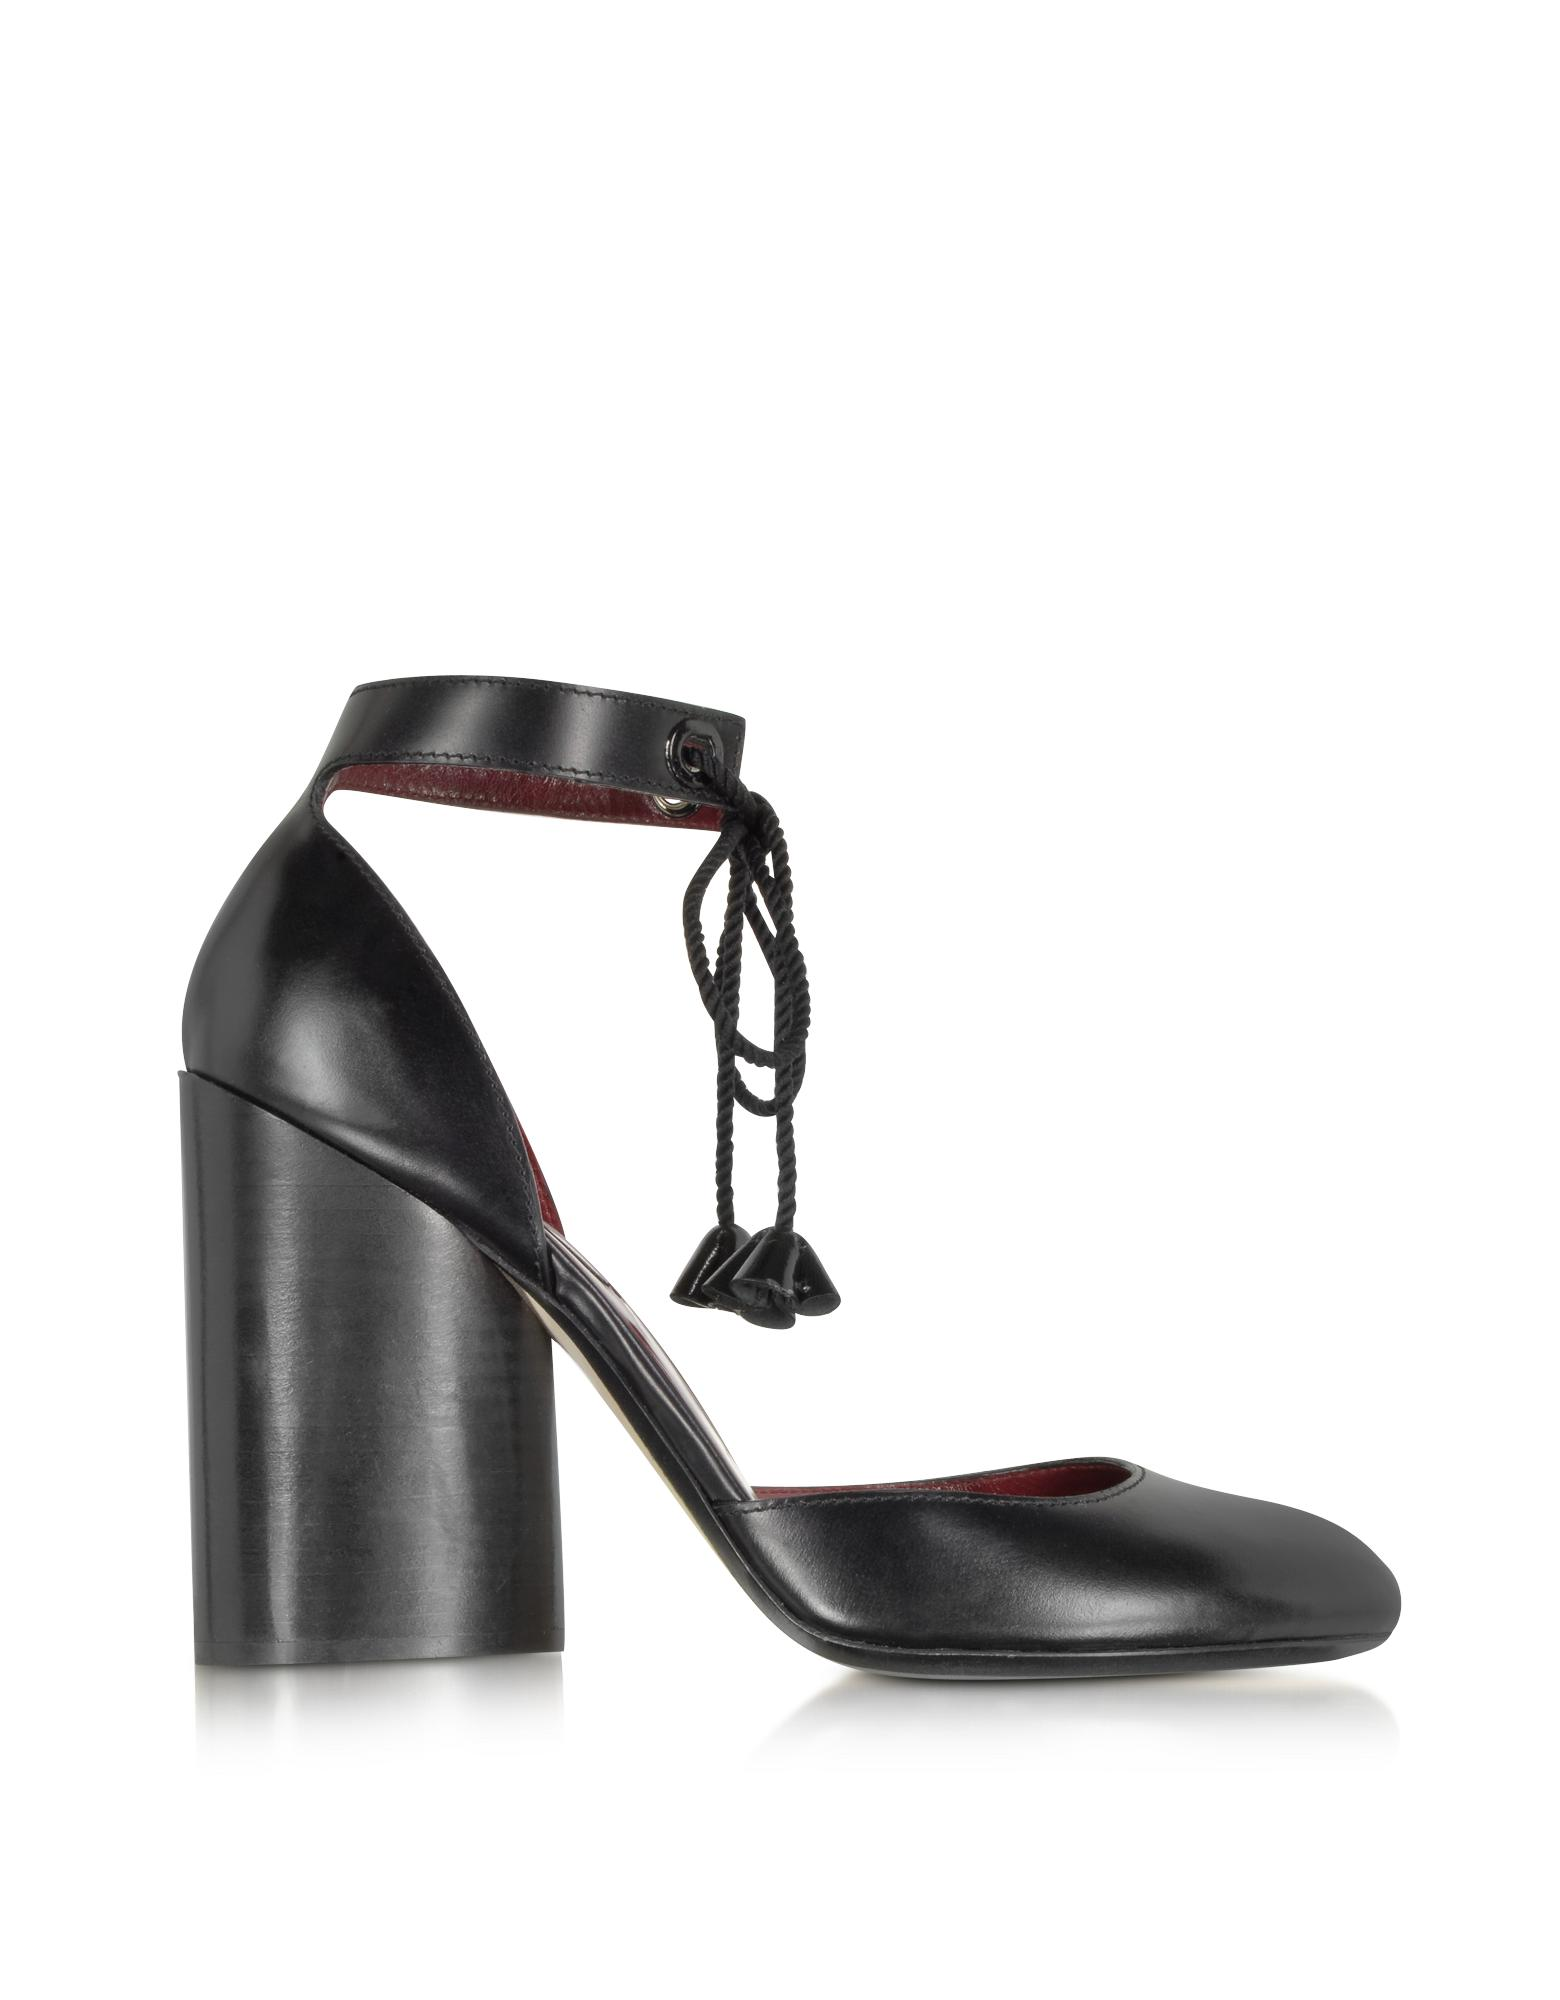 Black Leather Ankle Strap Pump - Marc Jacobs